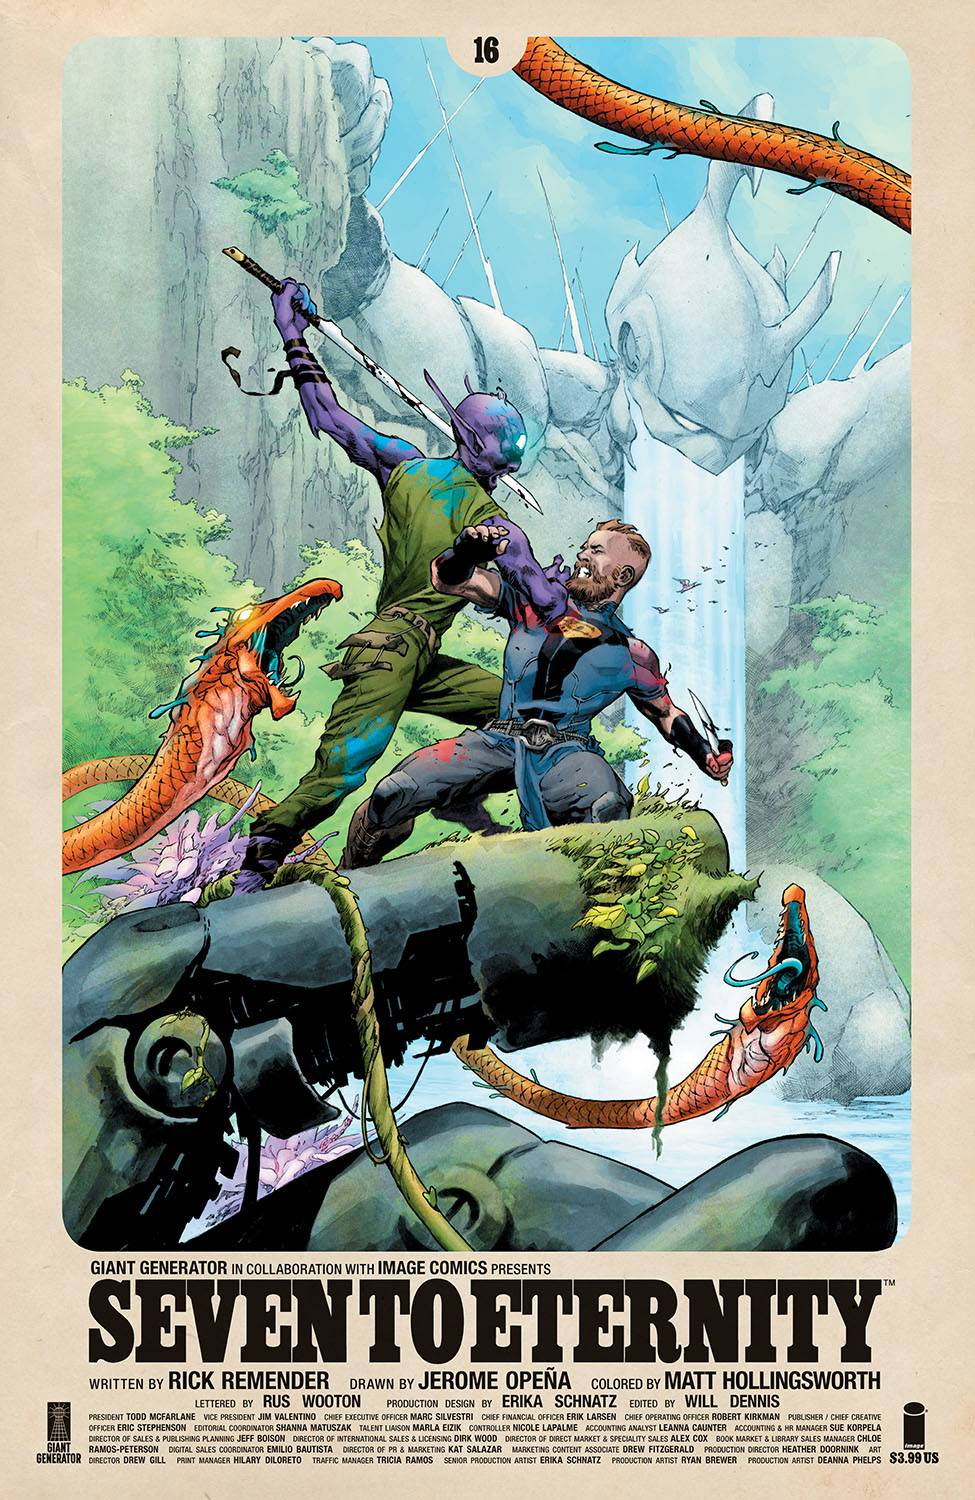 SEVEN TO ETERNITY #16 CVR A OPENA & HOLLINGSWORTH